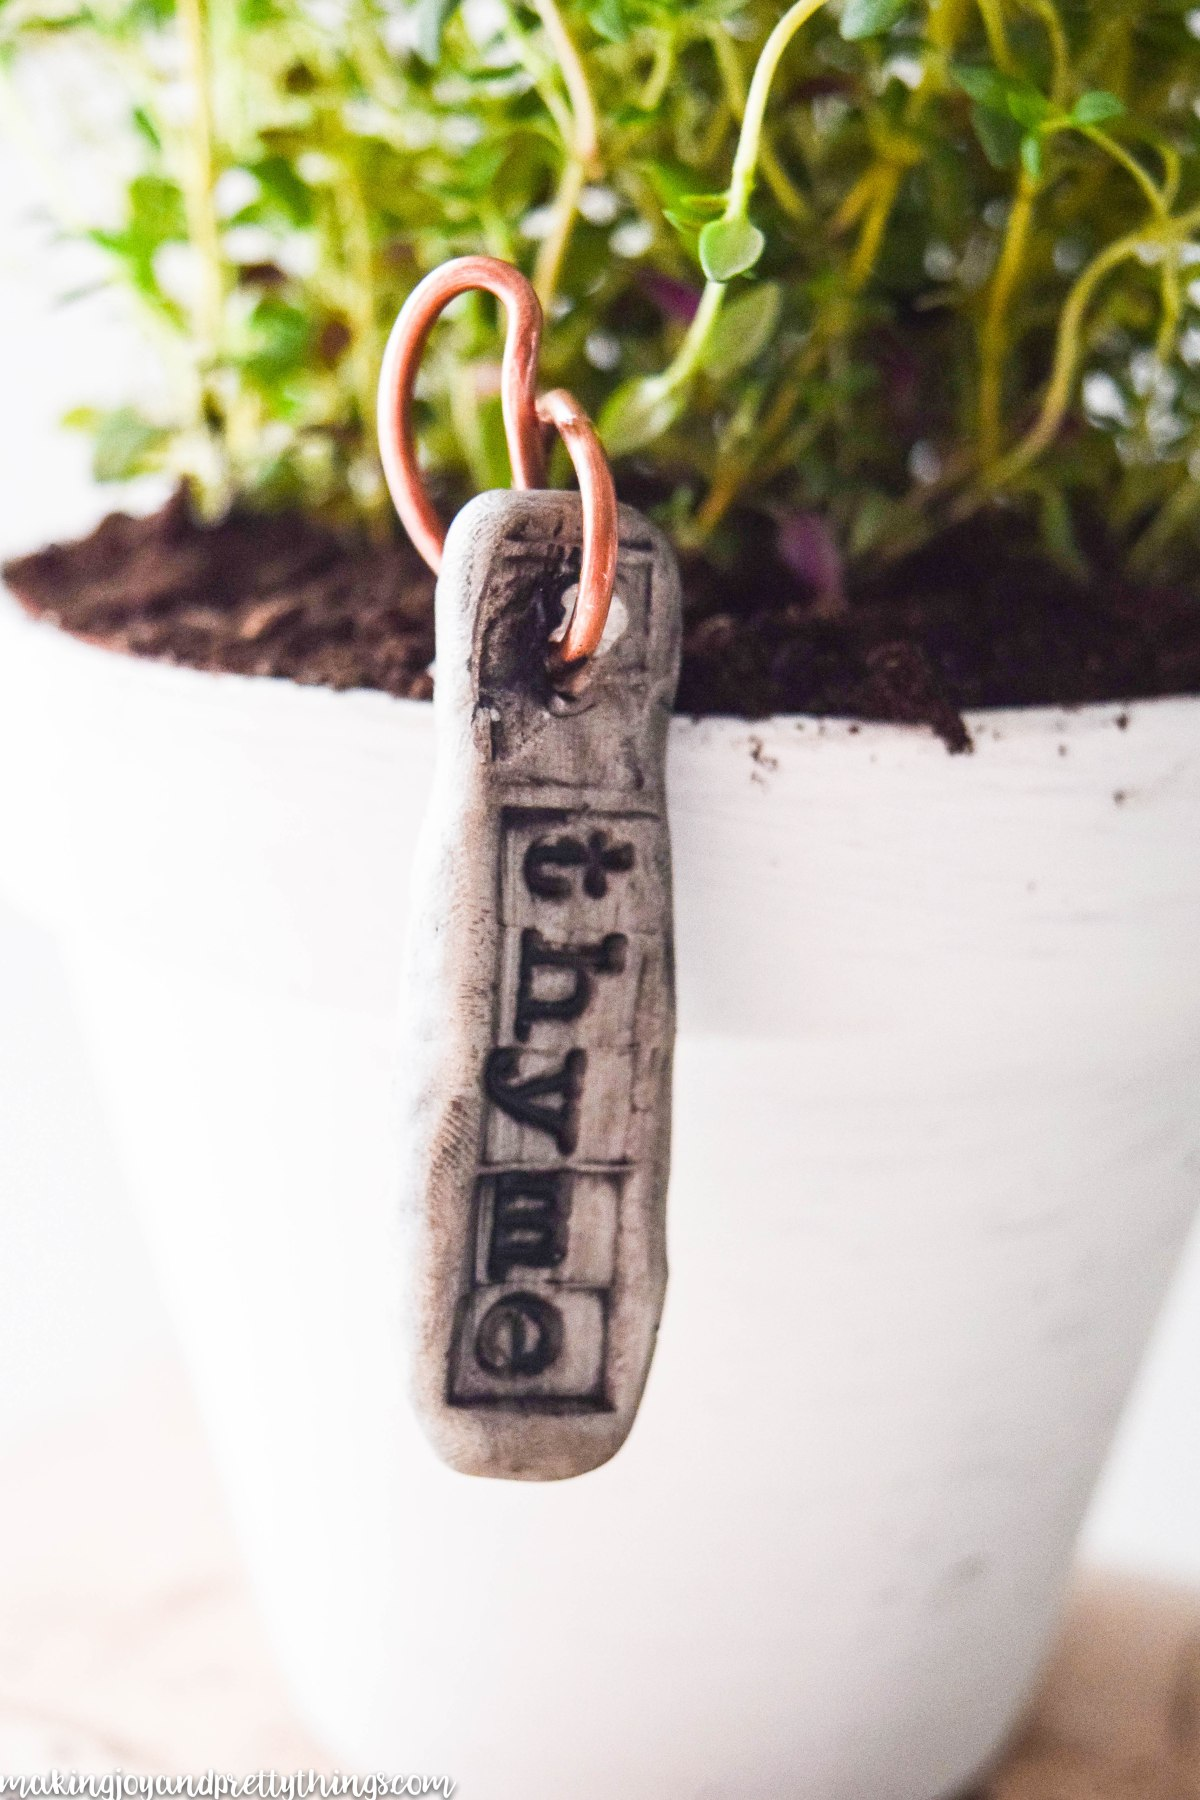 DIY Garden Markers using clay and copper wire.  Really adds rustic and farmhouse charm to plants.  Easy DIY plant markers perfect for herb garden, container garden or vegetable garden.